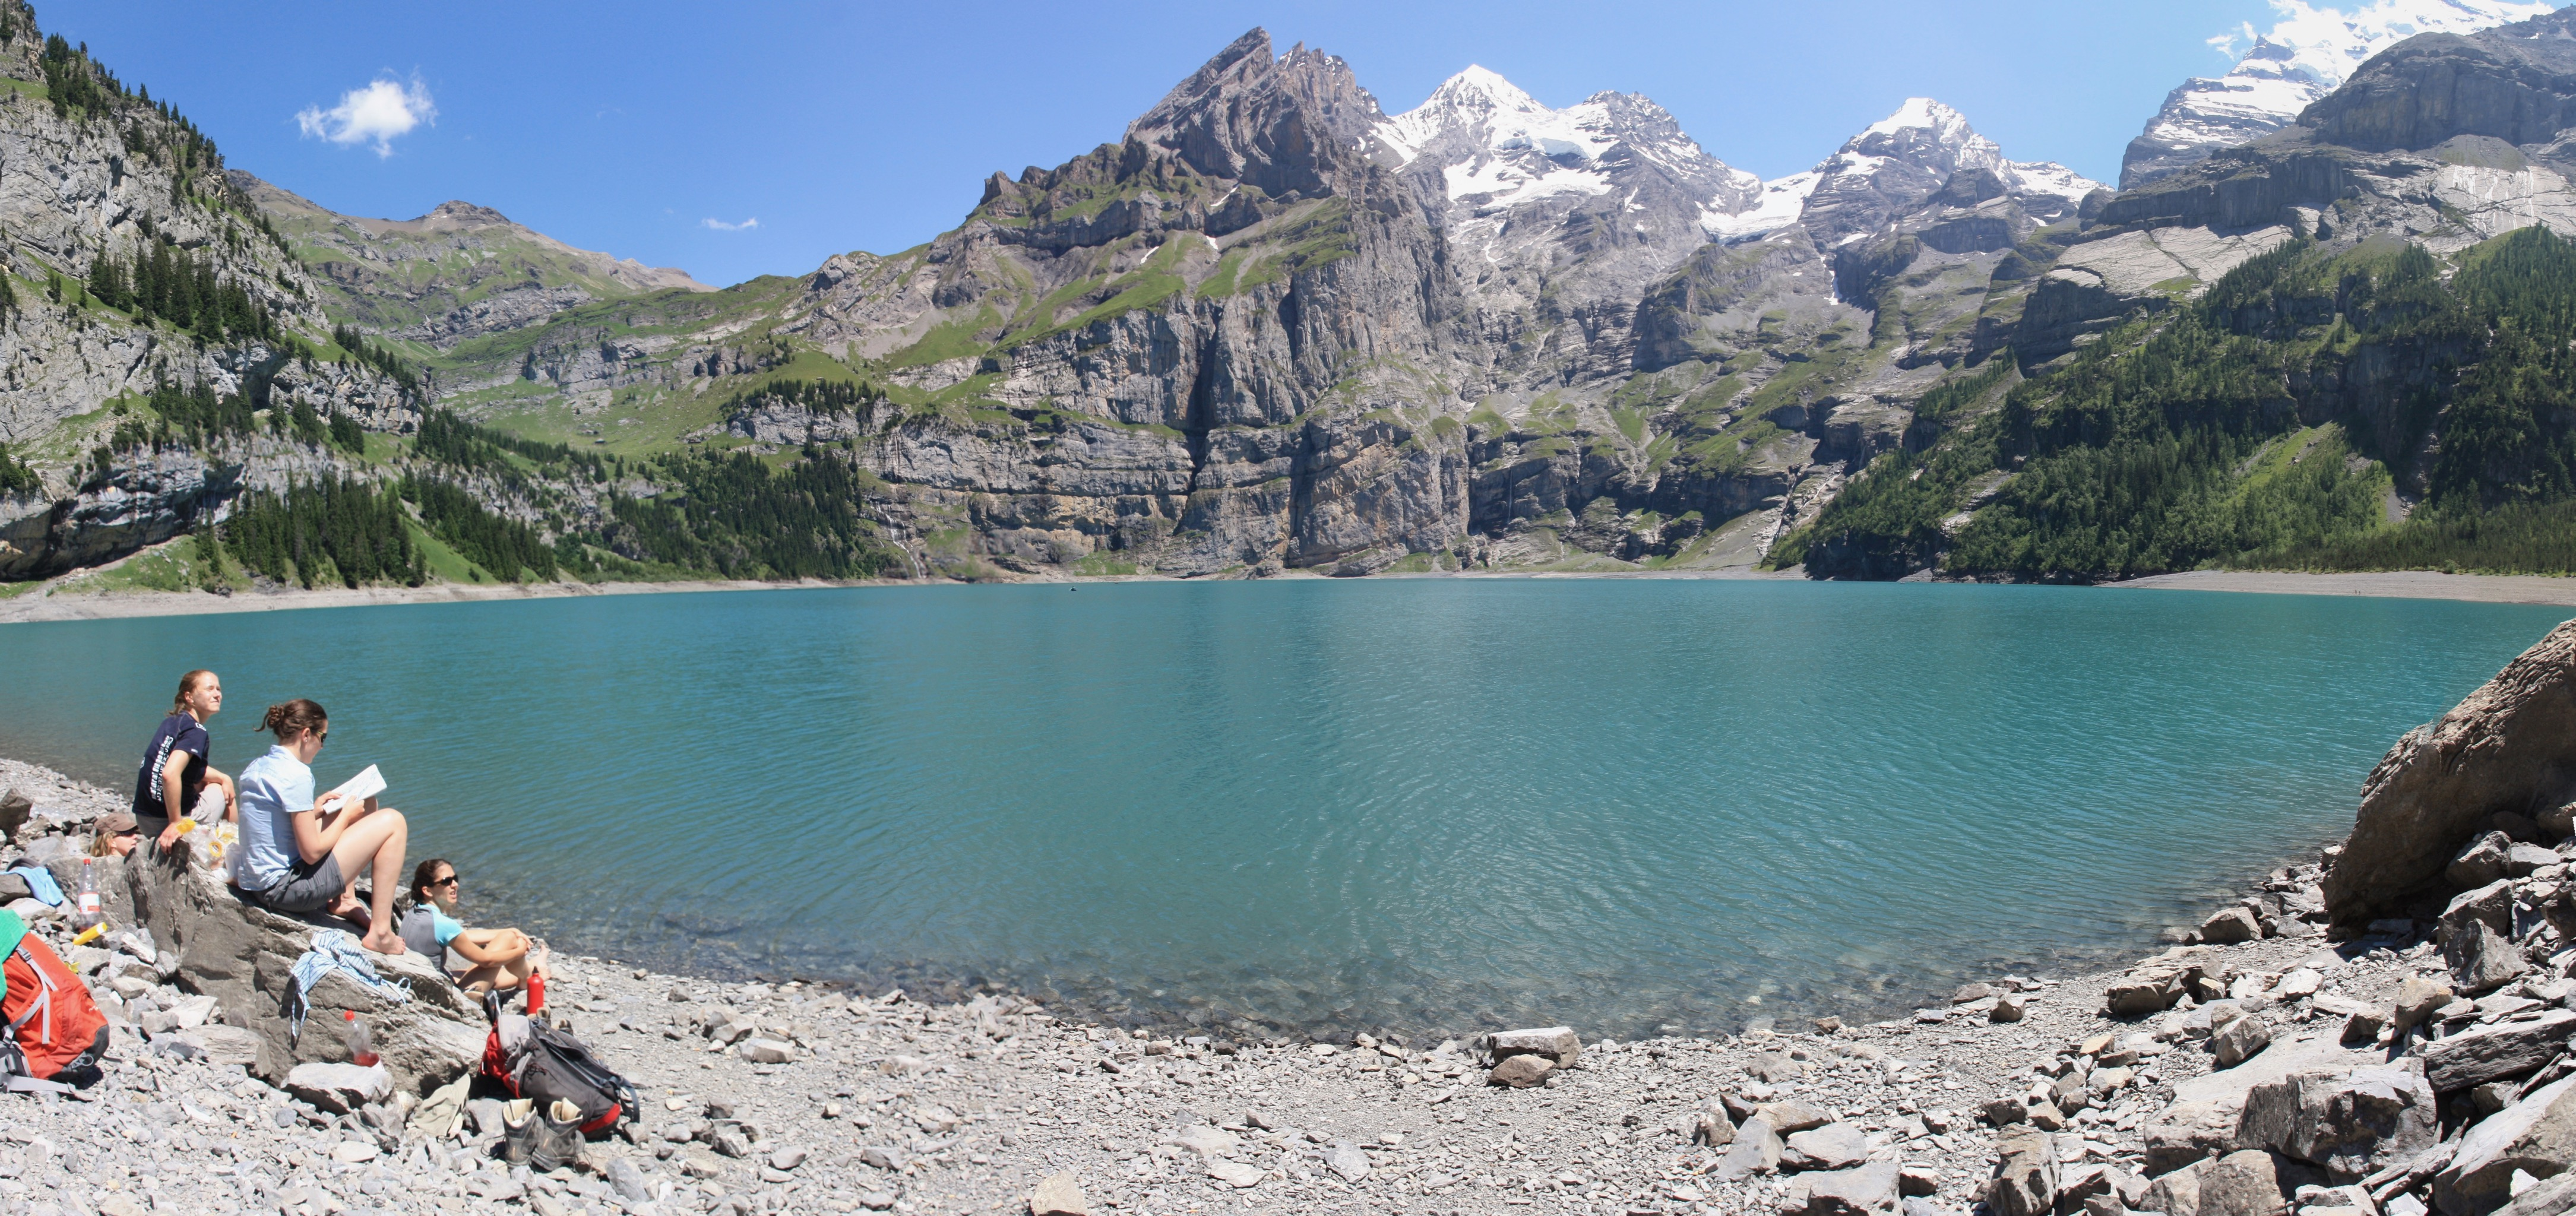 Relaxing by the Oeschinensee lake.